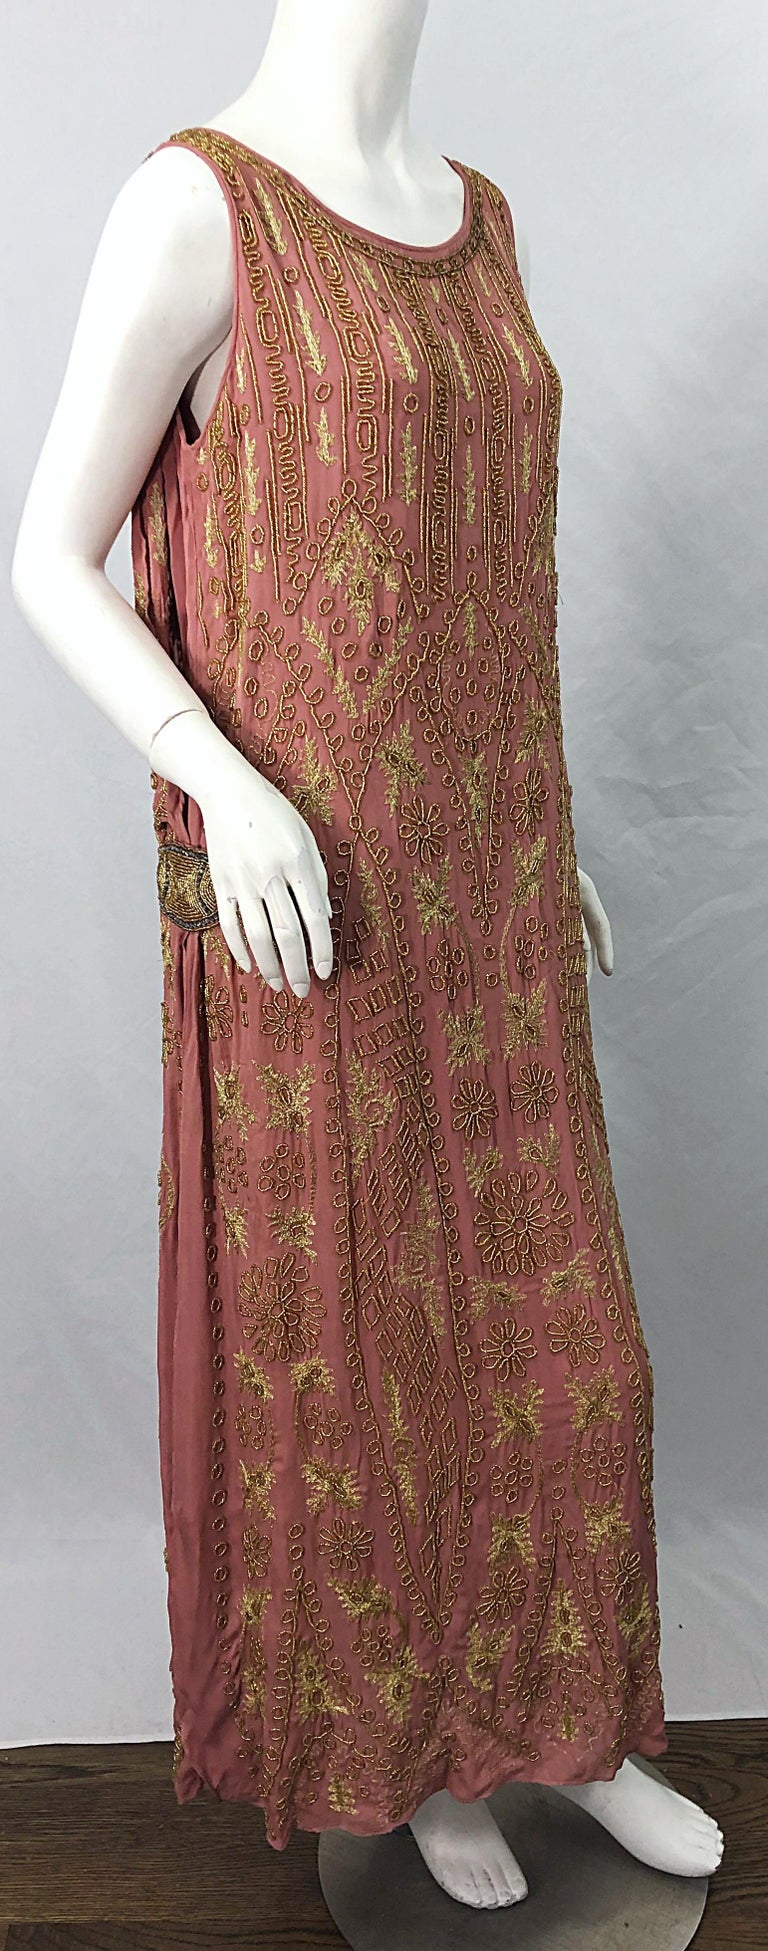 1920s French Couture Pink + Gold Beaded Gatsby Roaring 20s Vintage Flapper Dress For Sale 9